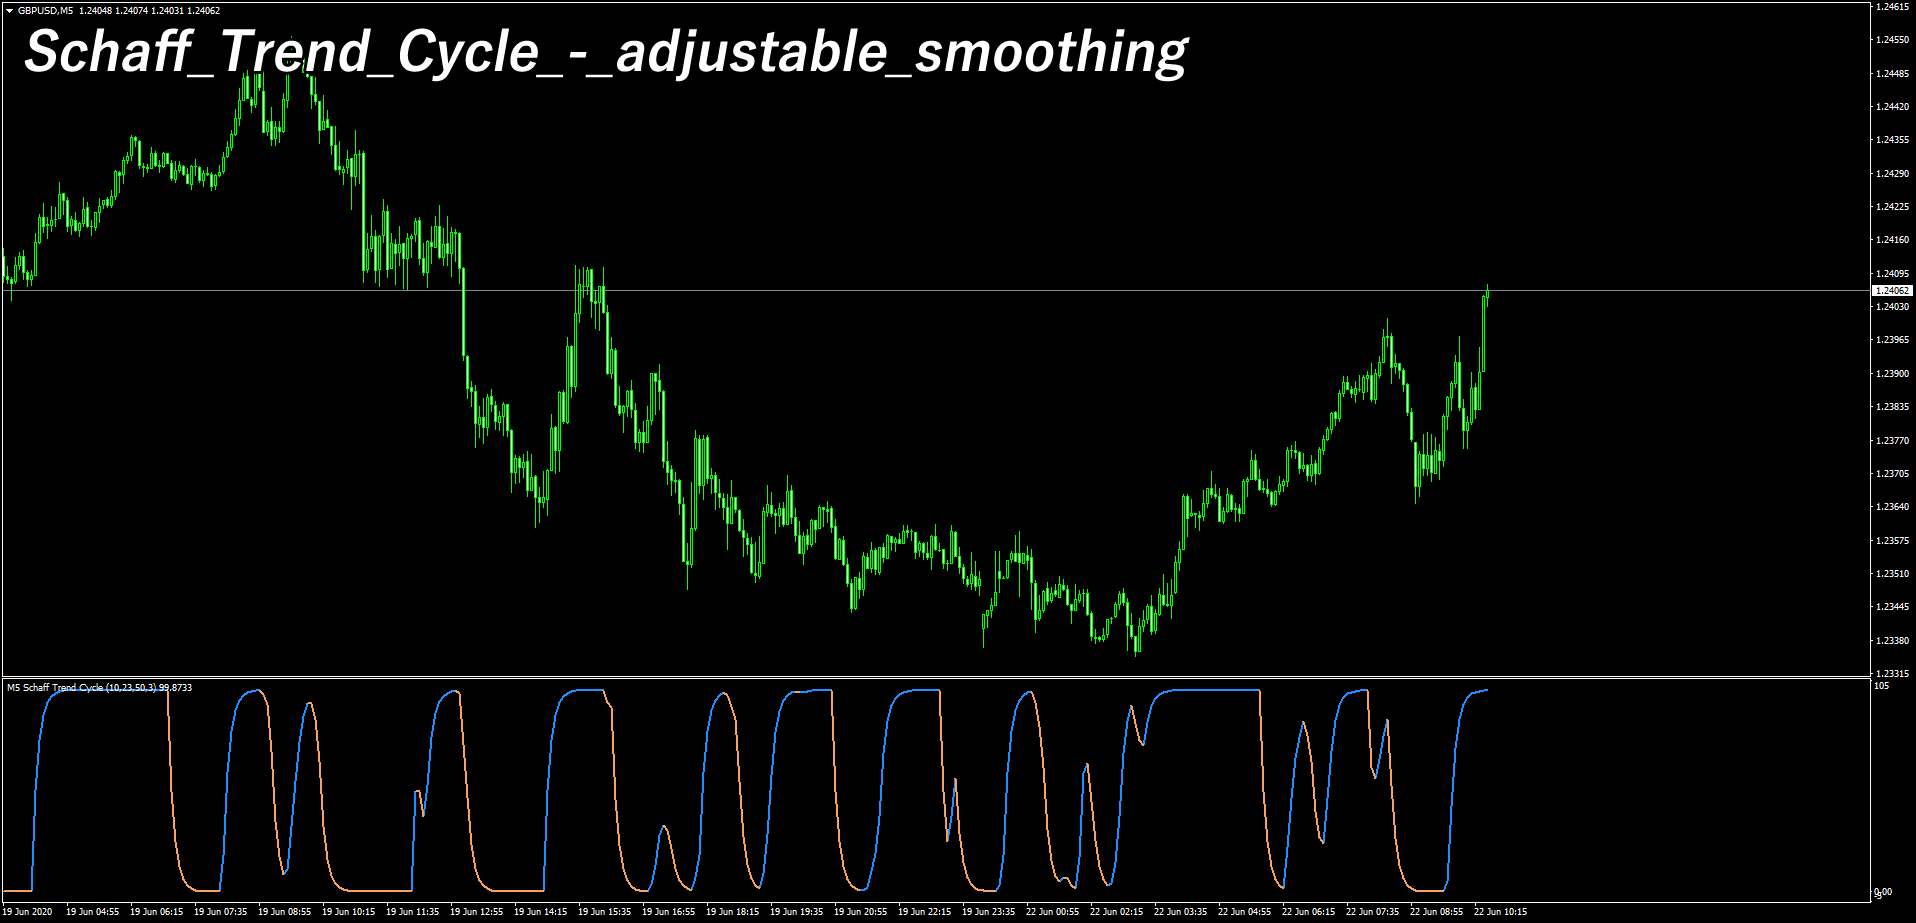 Schaff_Trend_Cycle_-_adjustable_smoothingを表示したチャート画像